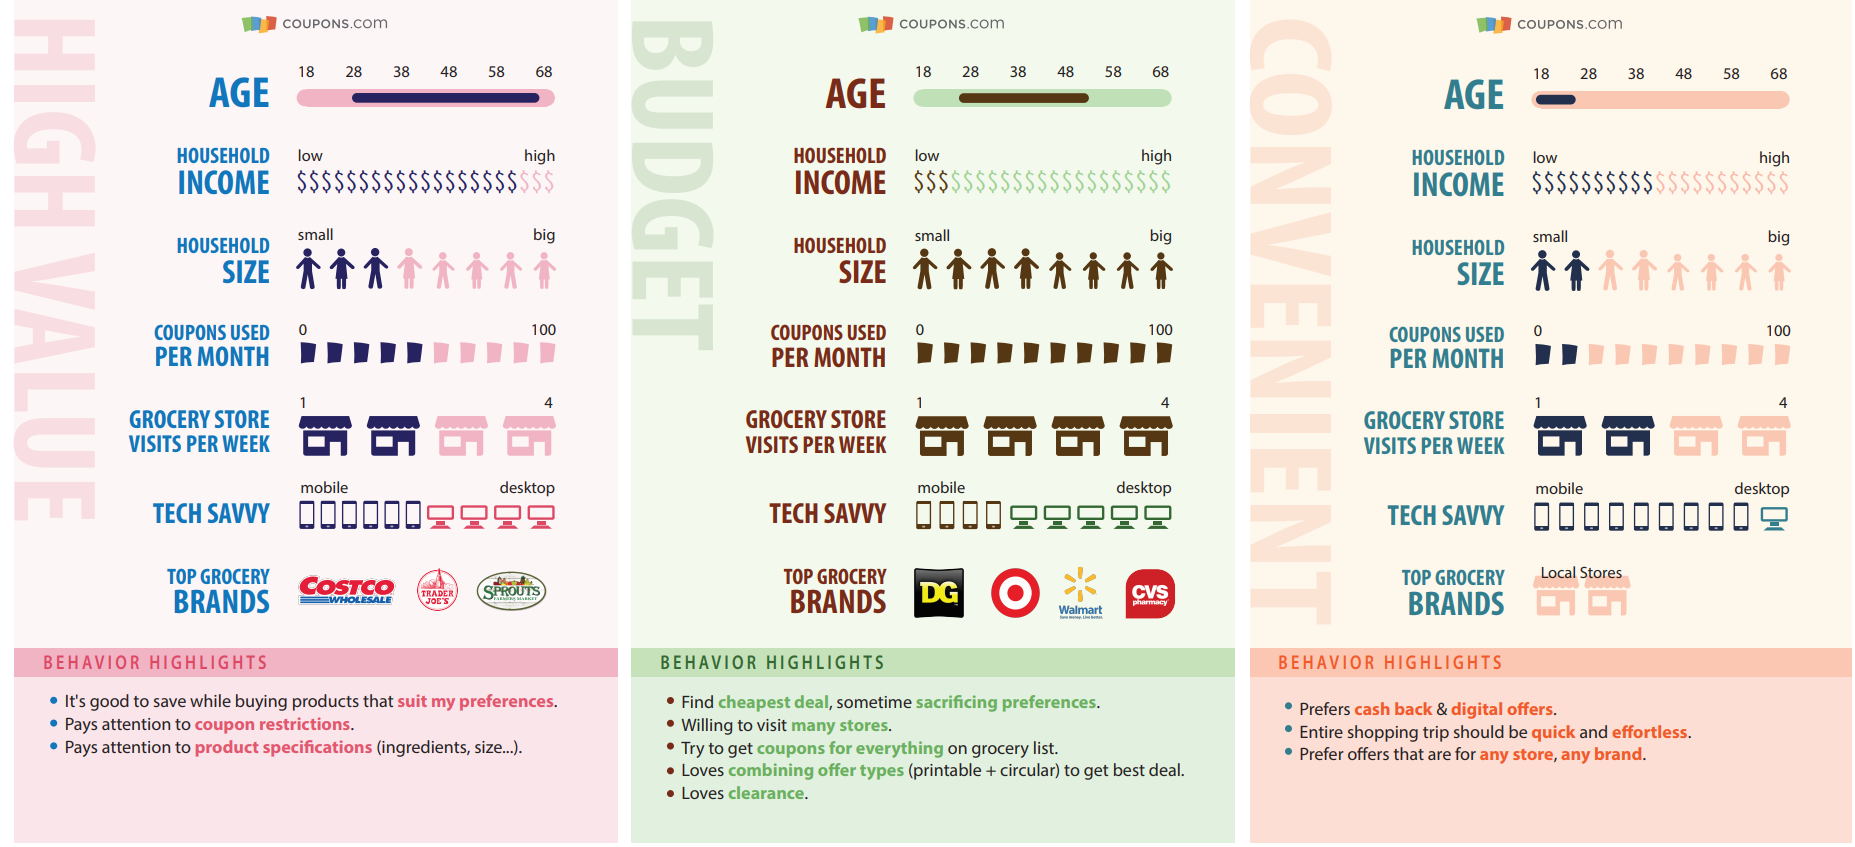 Descriptions of the demographics of each persona including age, household income, coupons used per month, tech savvy, and behavior highlights.